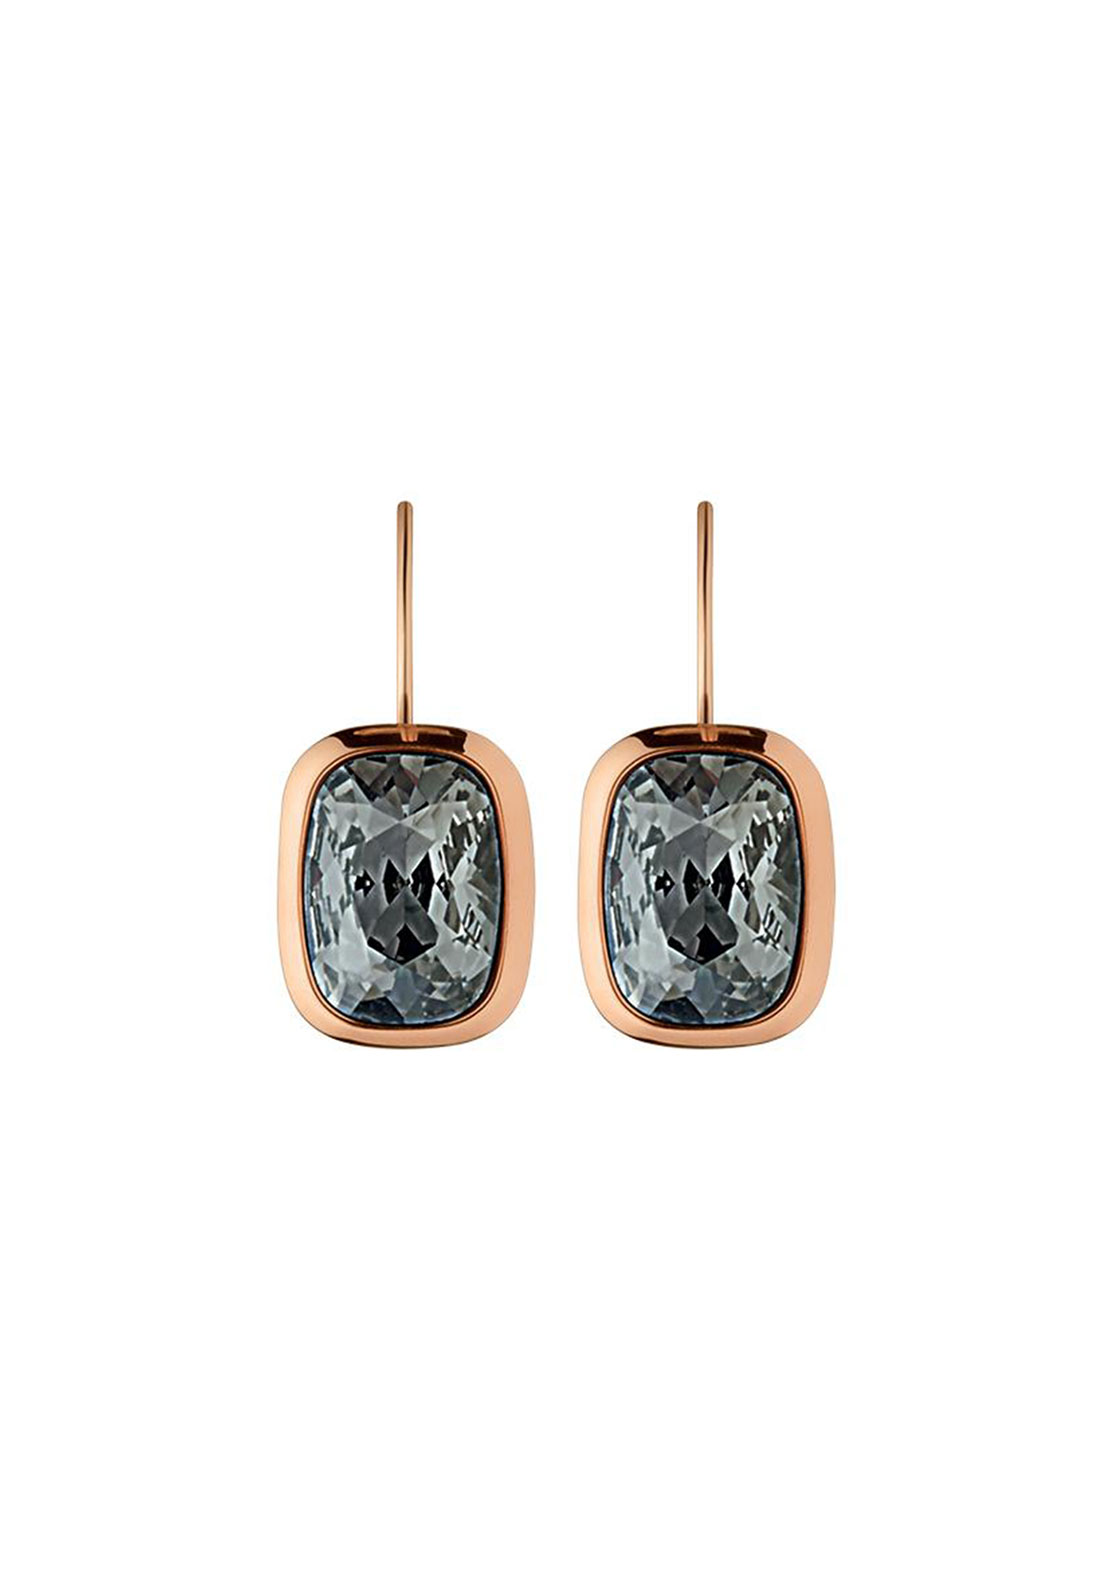 Dyrberg Kern Rina Earrings, Rose Gold & Grey